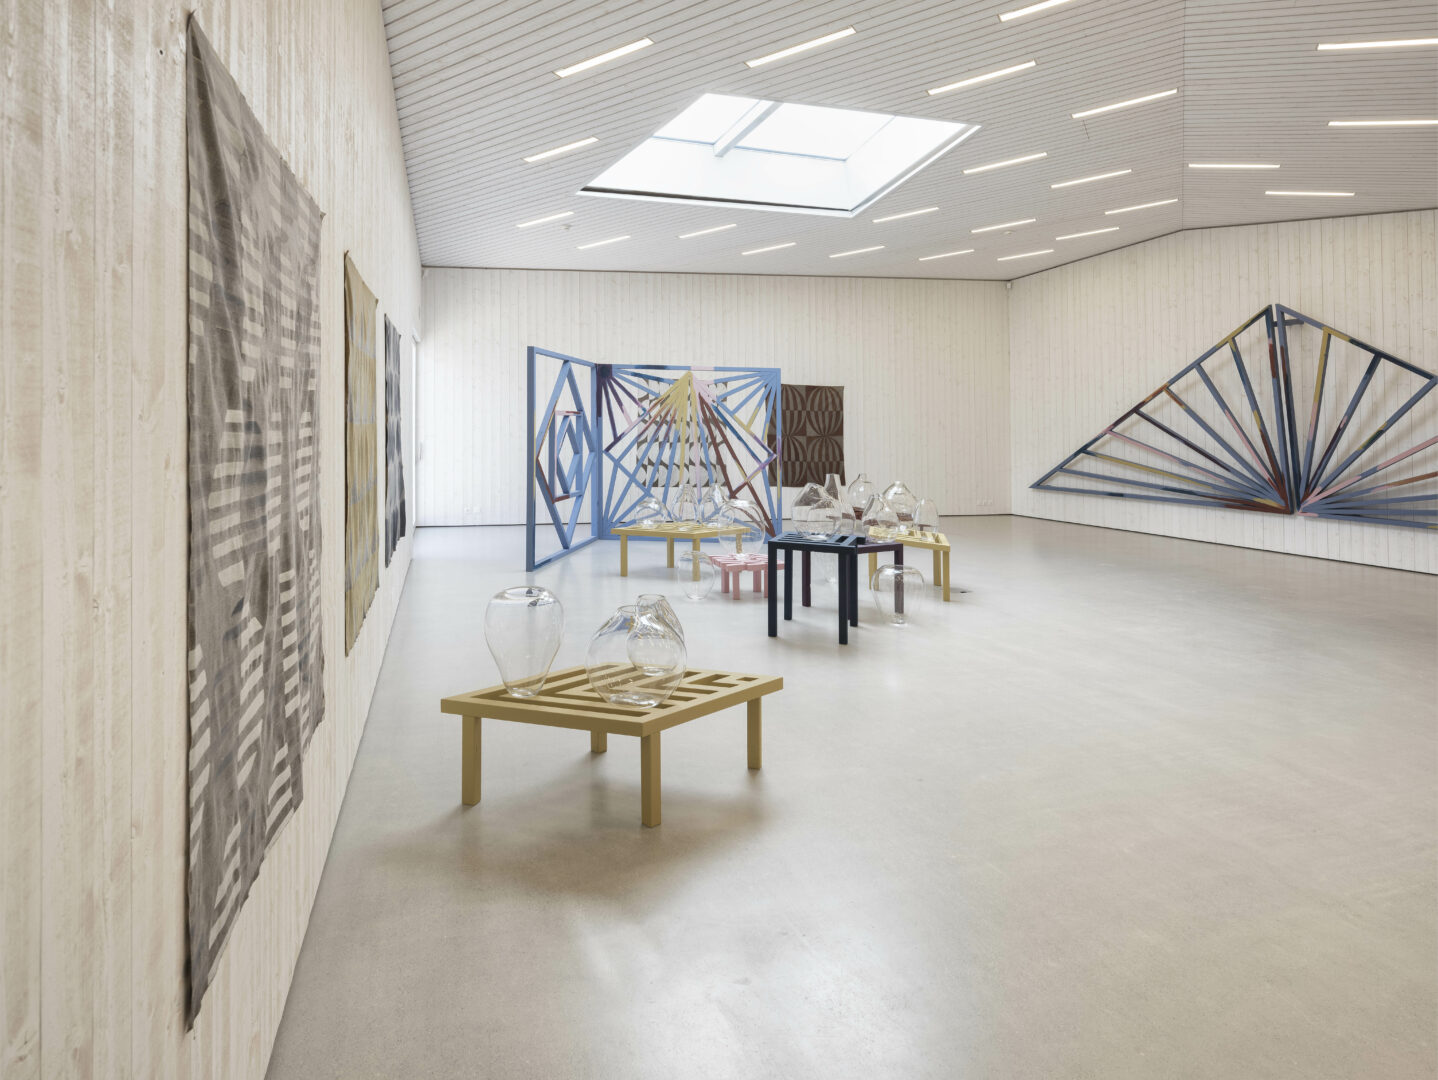 Exhibition View Athene Galiciadis «Spiraling Shifts» at Nidwaldner Museum, Stans, 2019 / Photo: Christian Hartmann / Courtesy: the artist and Nidwaldner Kunstmuseum